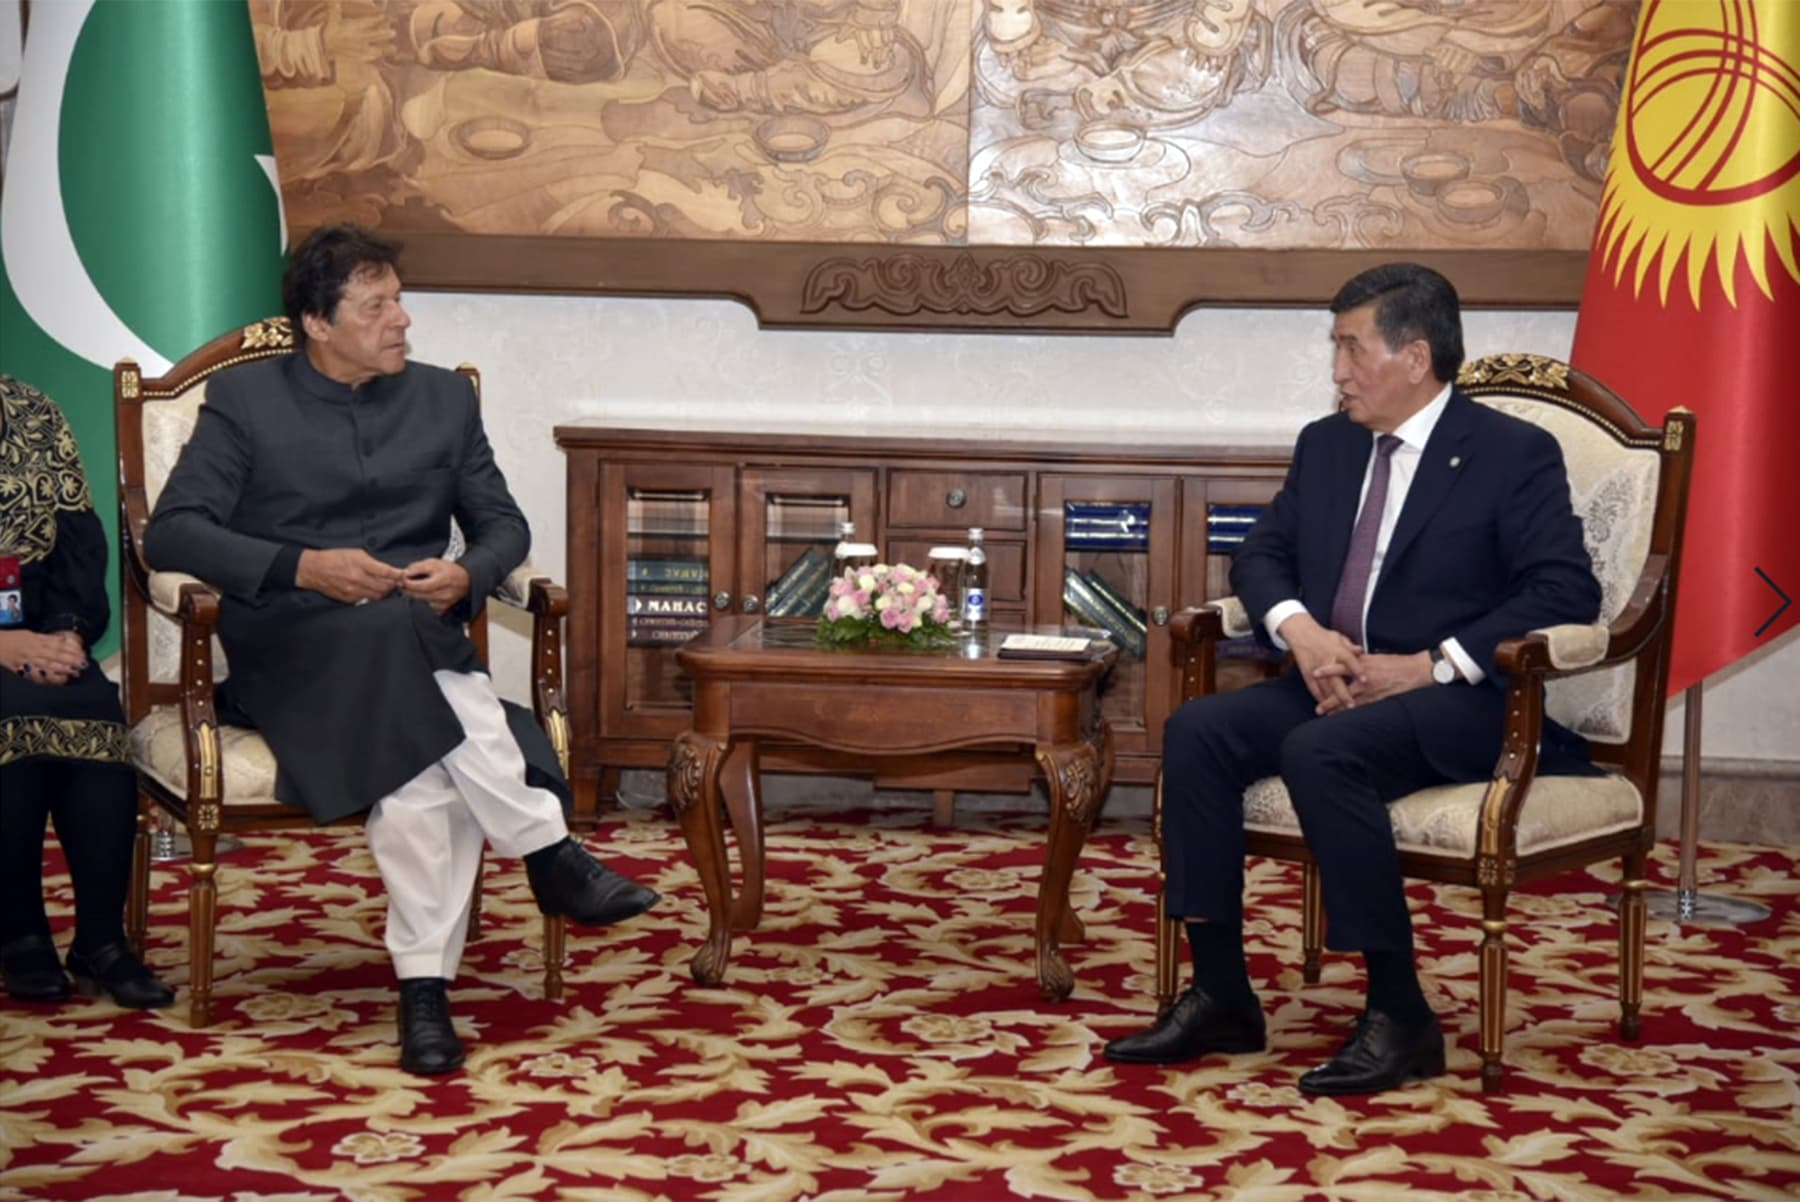 Prime Minister Imran Khan in a meeting with  Kyrgyz President Sooronbay Jeenbekov. — Photo courtesy PM Office